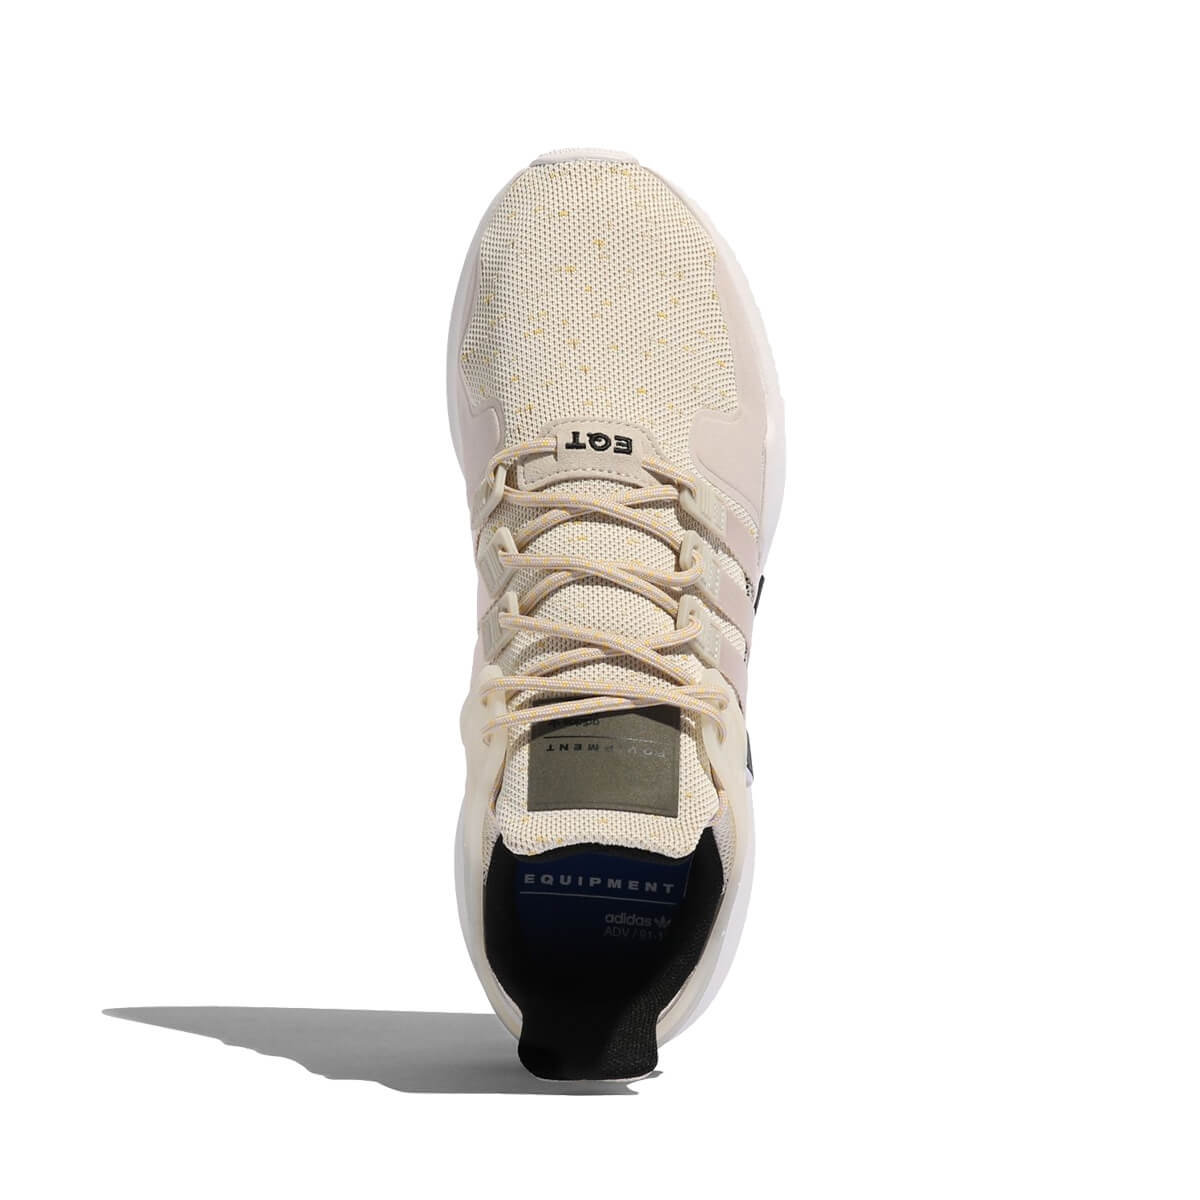 New-Authentic-Adidas-EQT-SUPPORT-ADV-Men-Fashion-Shoes-Mid-Sneakers-White-Grey thumbnail 14